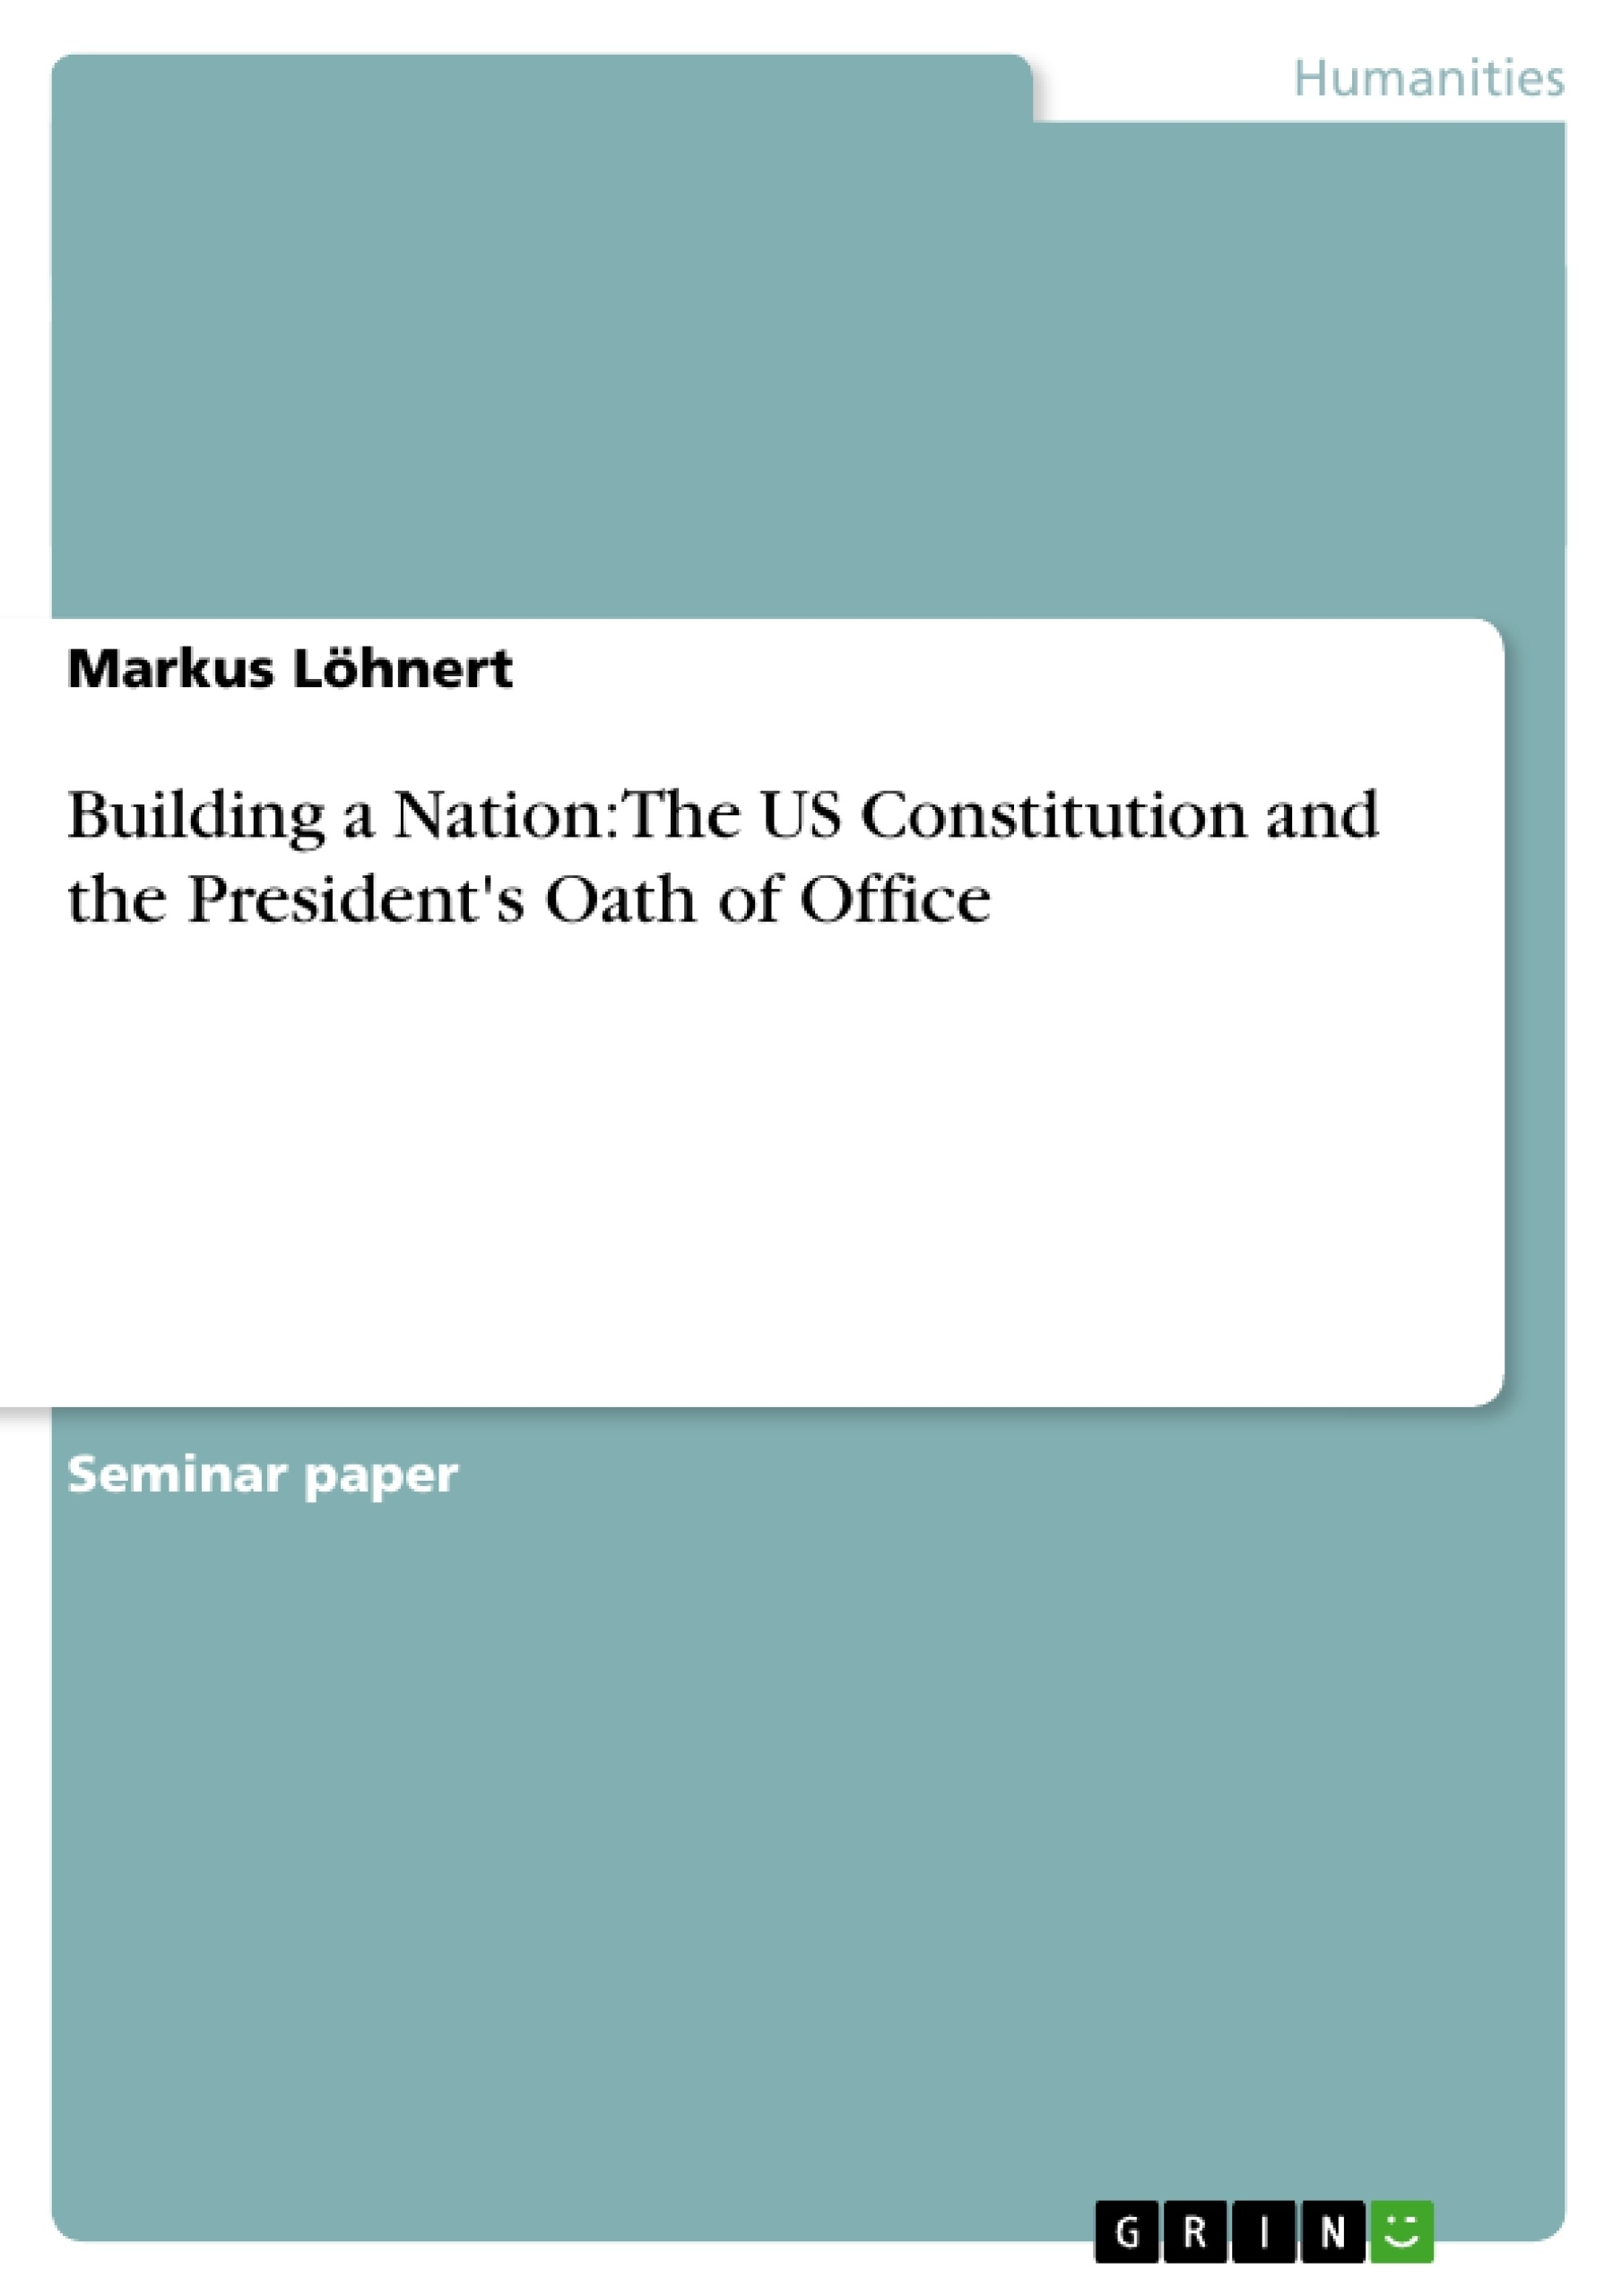 Title: Building a Nation: The US Constitution and the President's Oath of Office